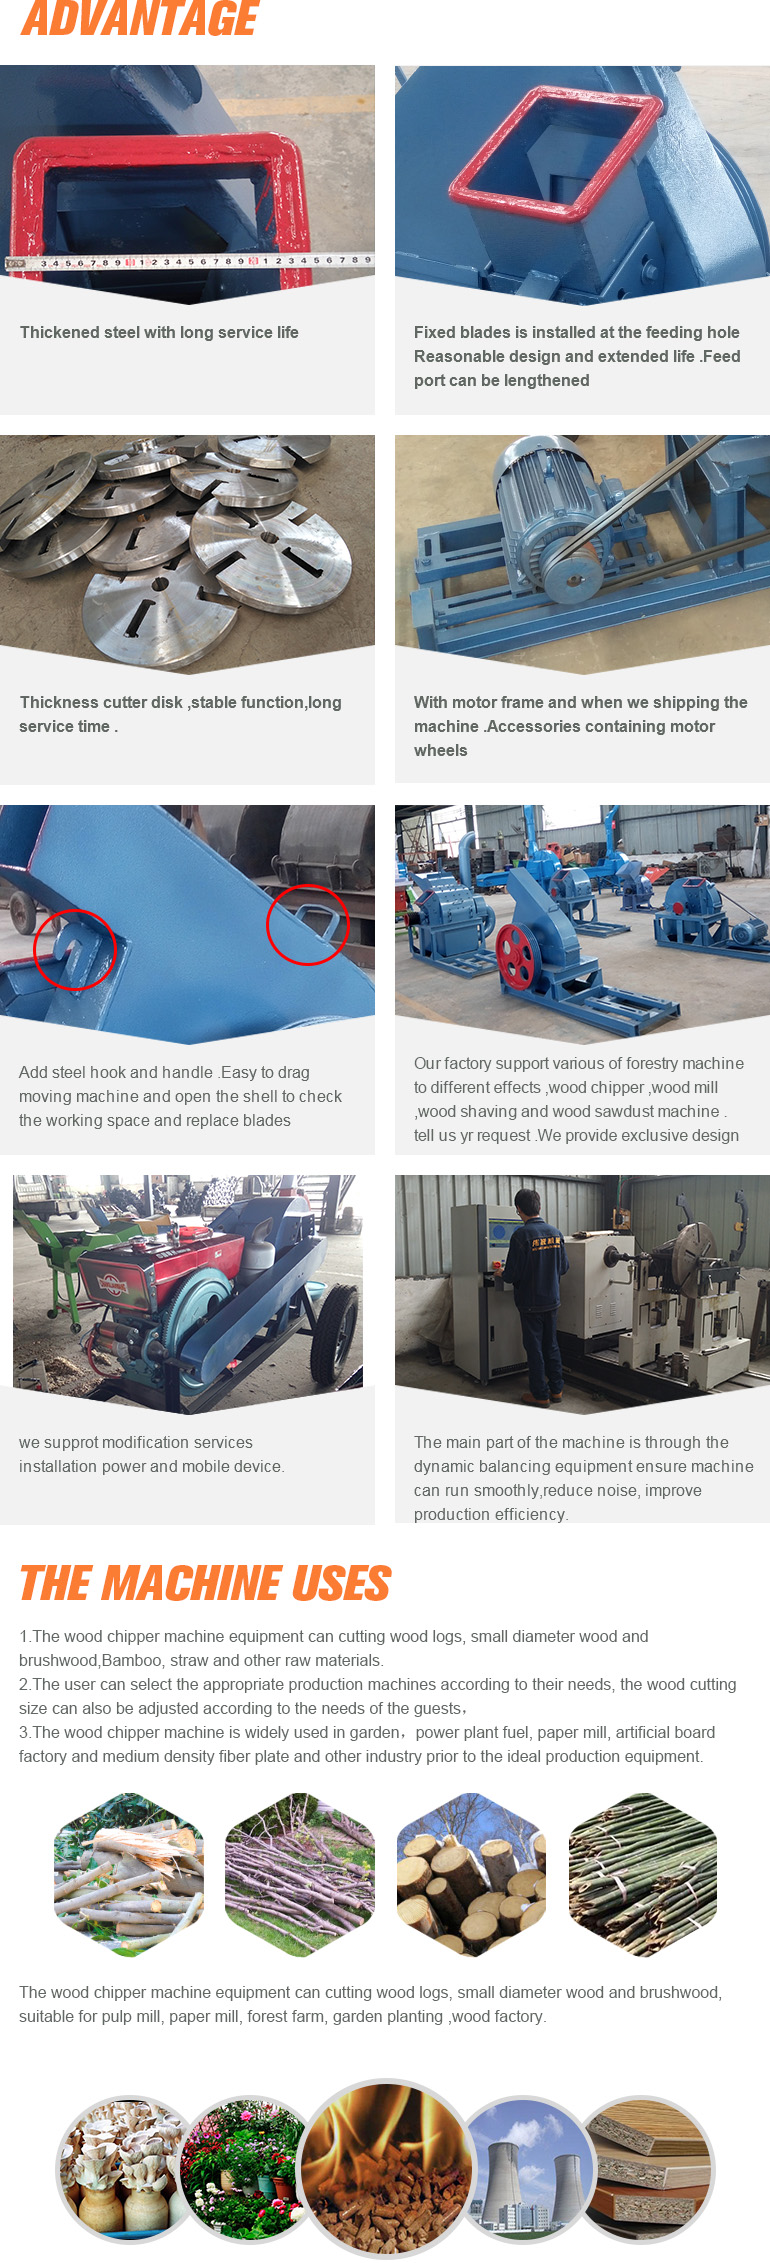 weiwei wood chipper machine